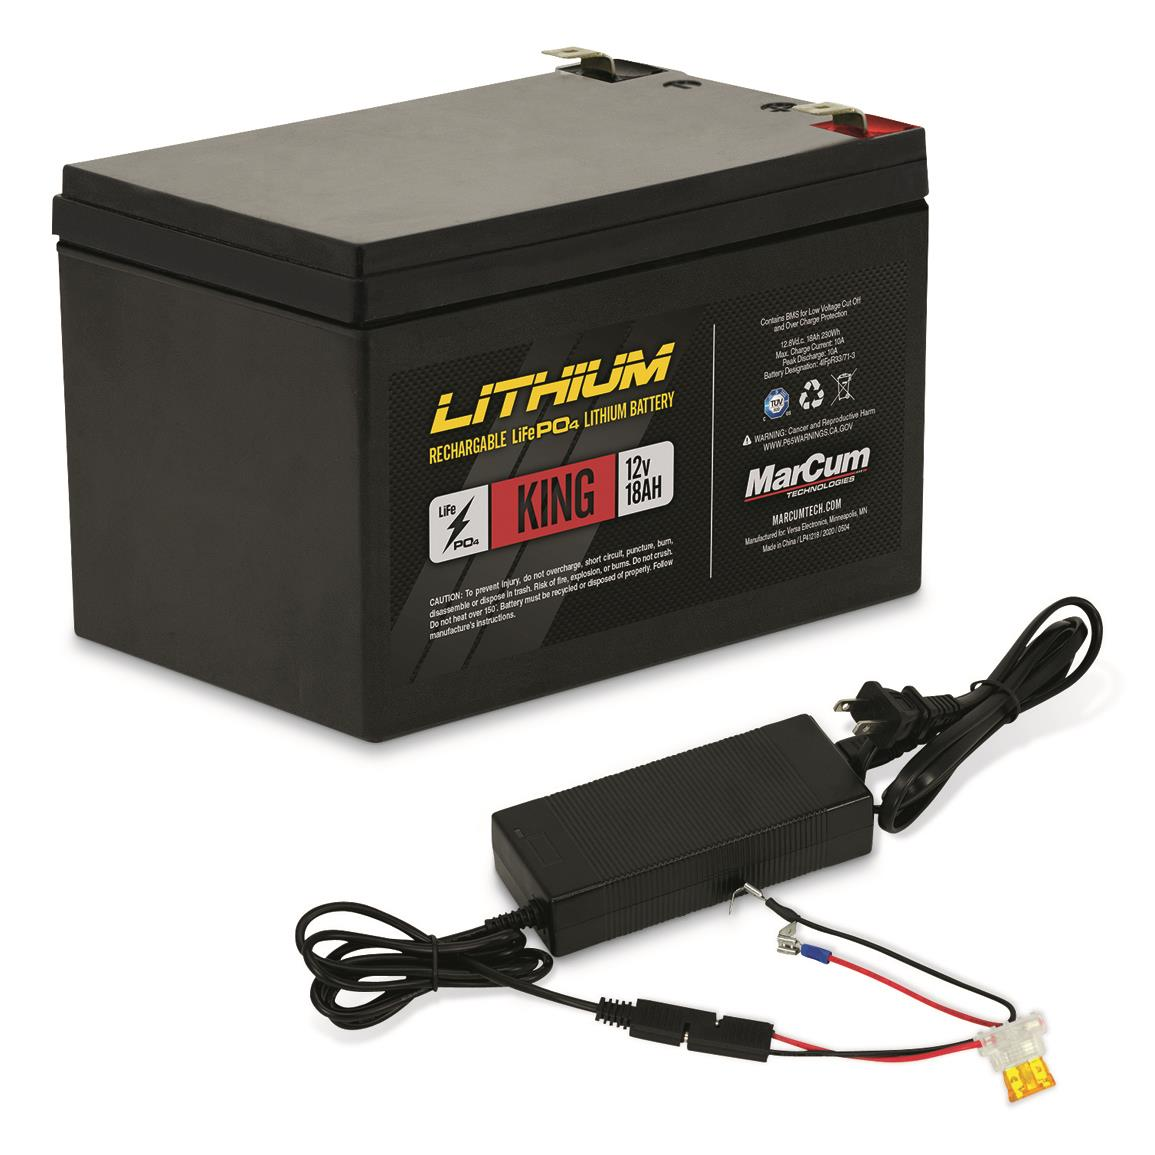 MarCum King 12V 18A LiFePO4 Battery with 6A Charger